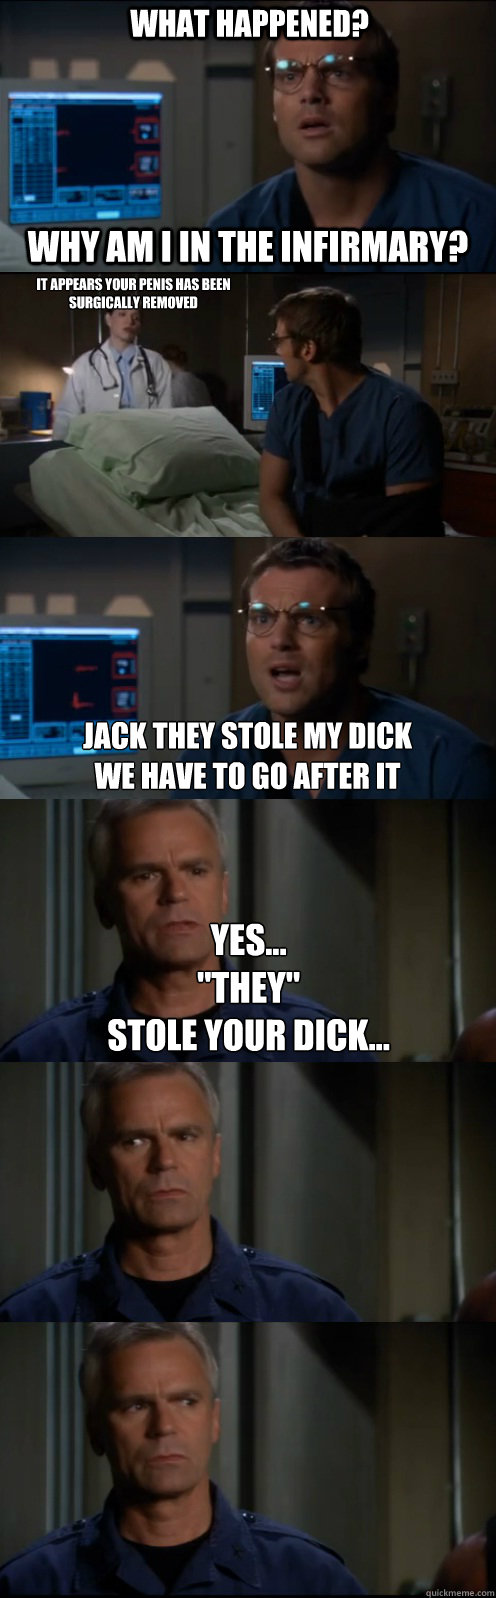 jack your dick